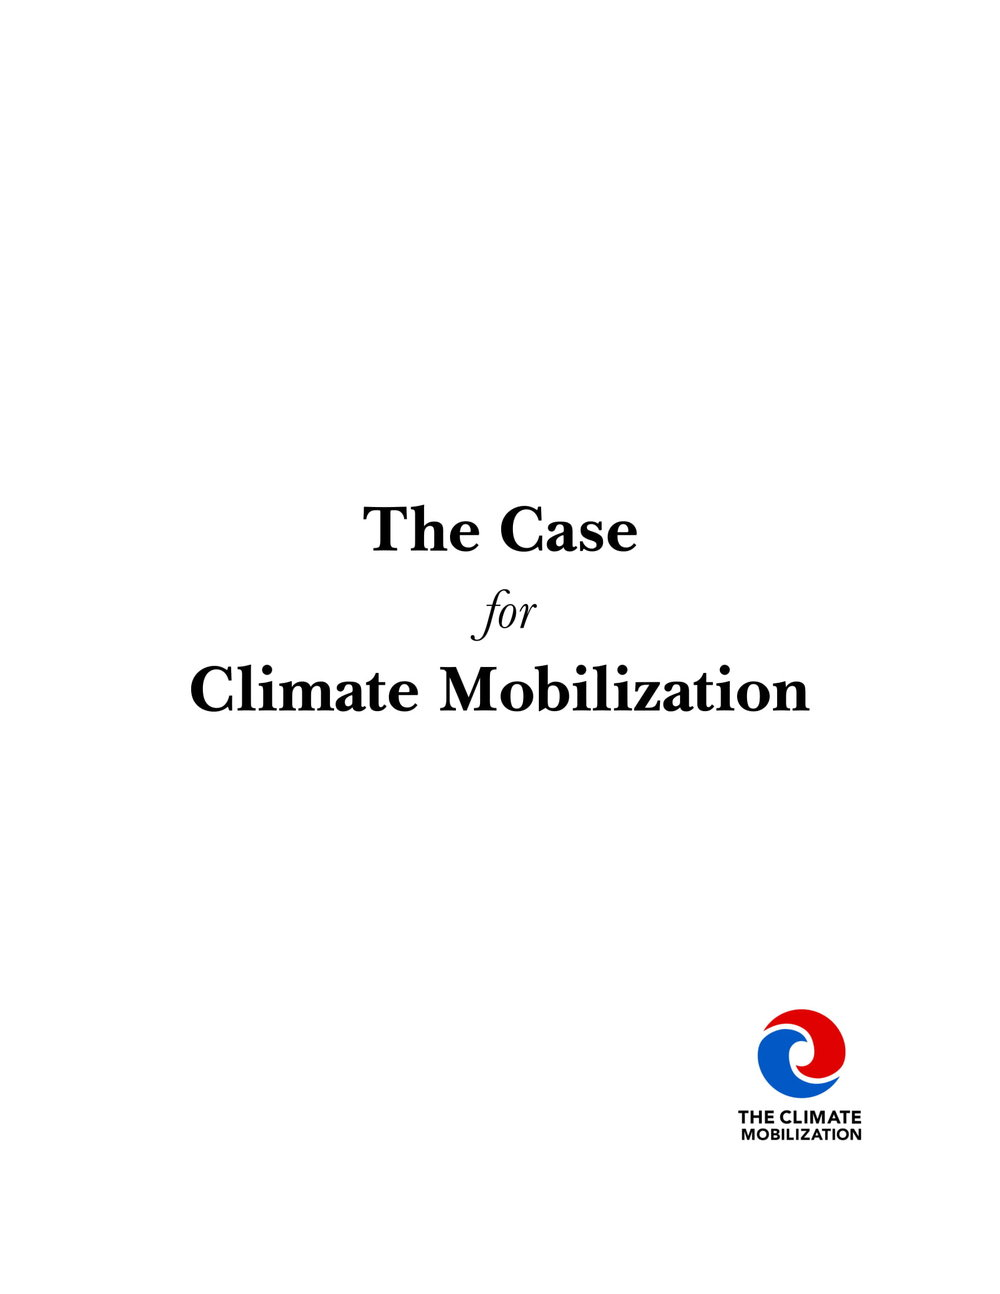 The Case for Climate Mobilization-01.jpg